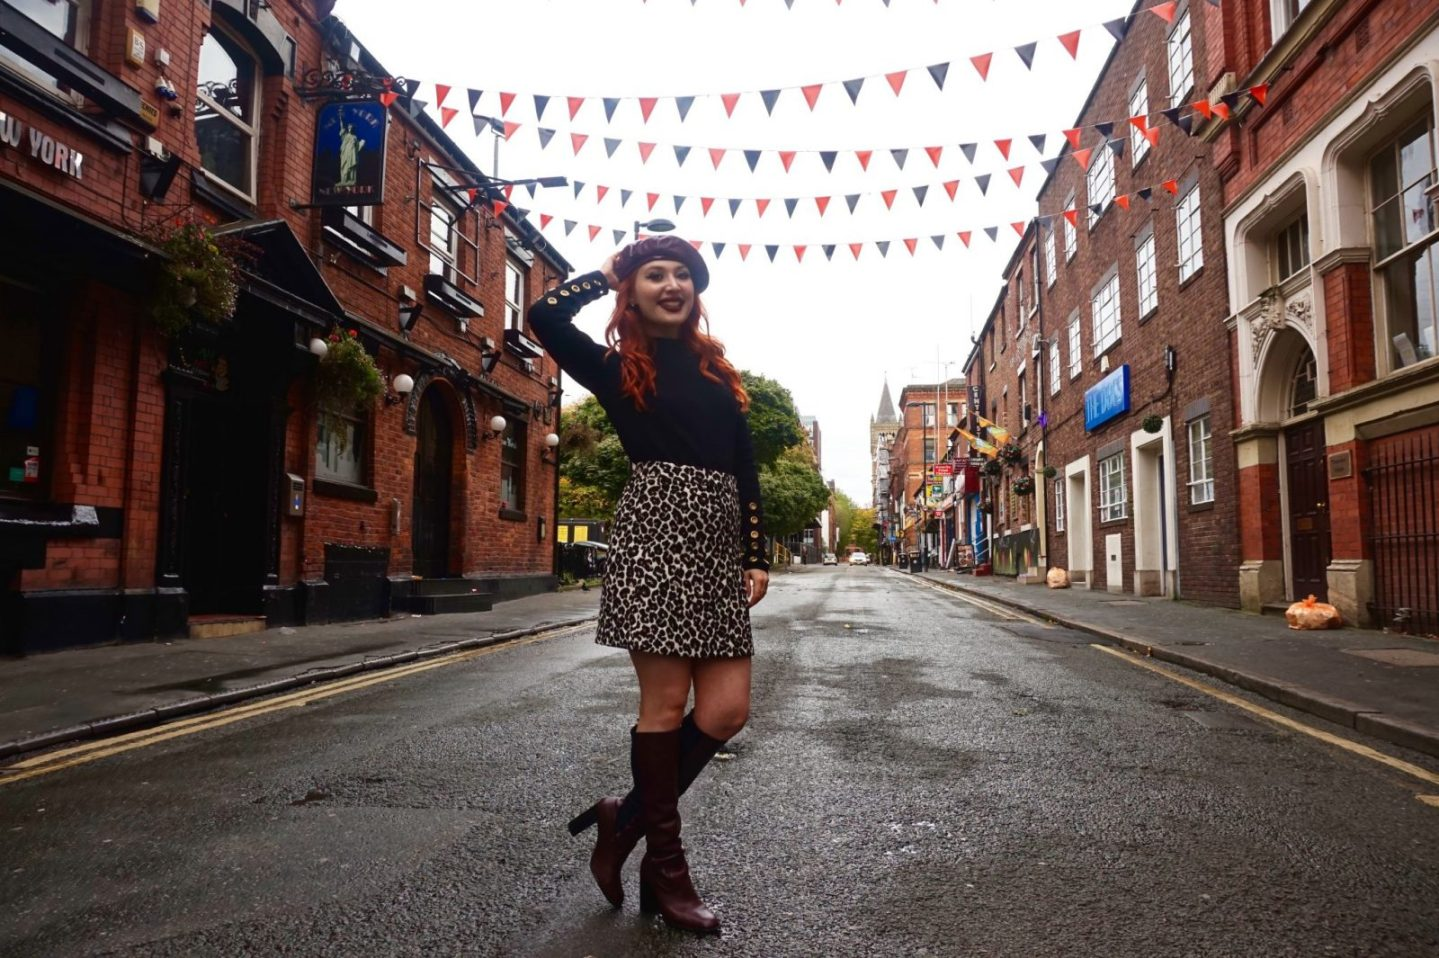 Boots and berets: exploring Manchester street style